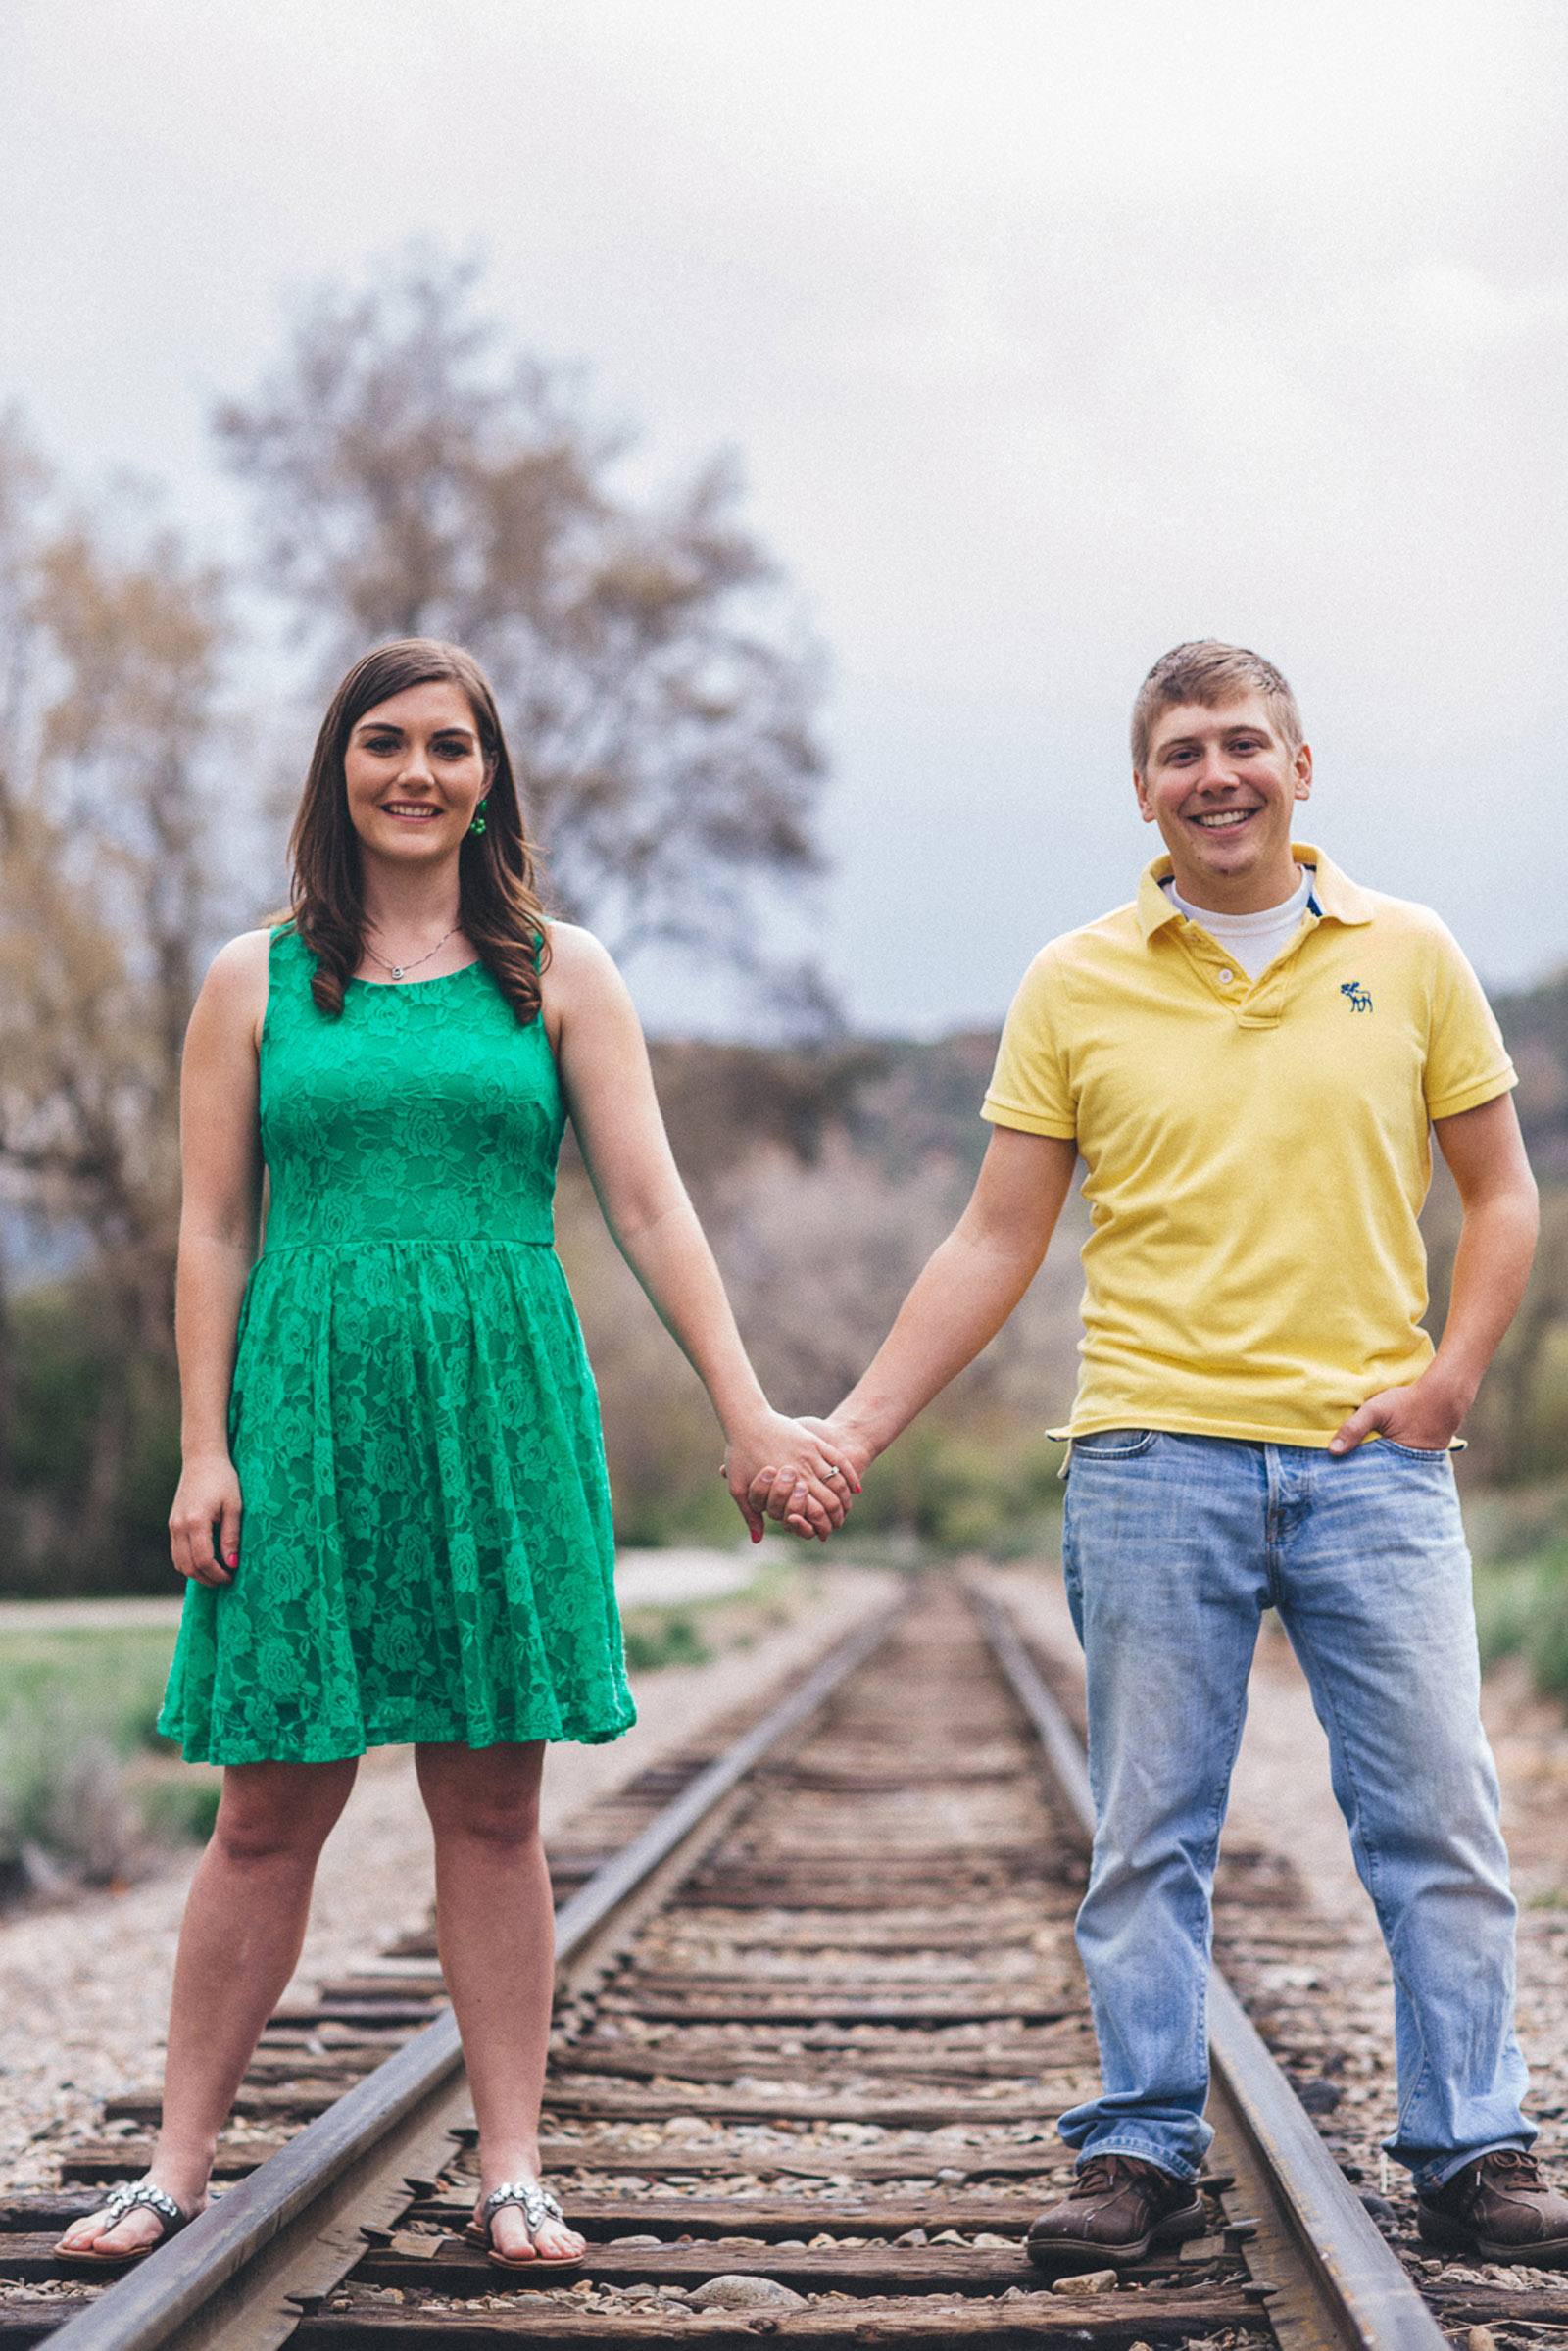 022-engagement-trees-fun-wedding-train-aughing-durango-colorado-farmington